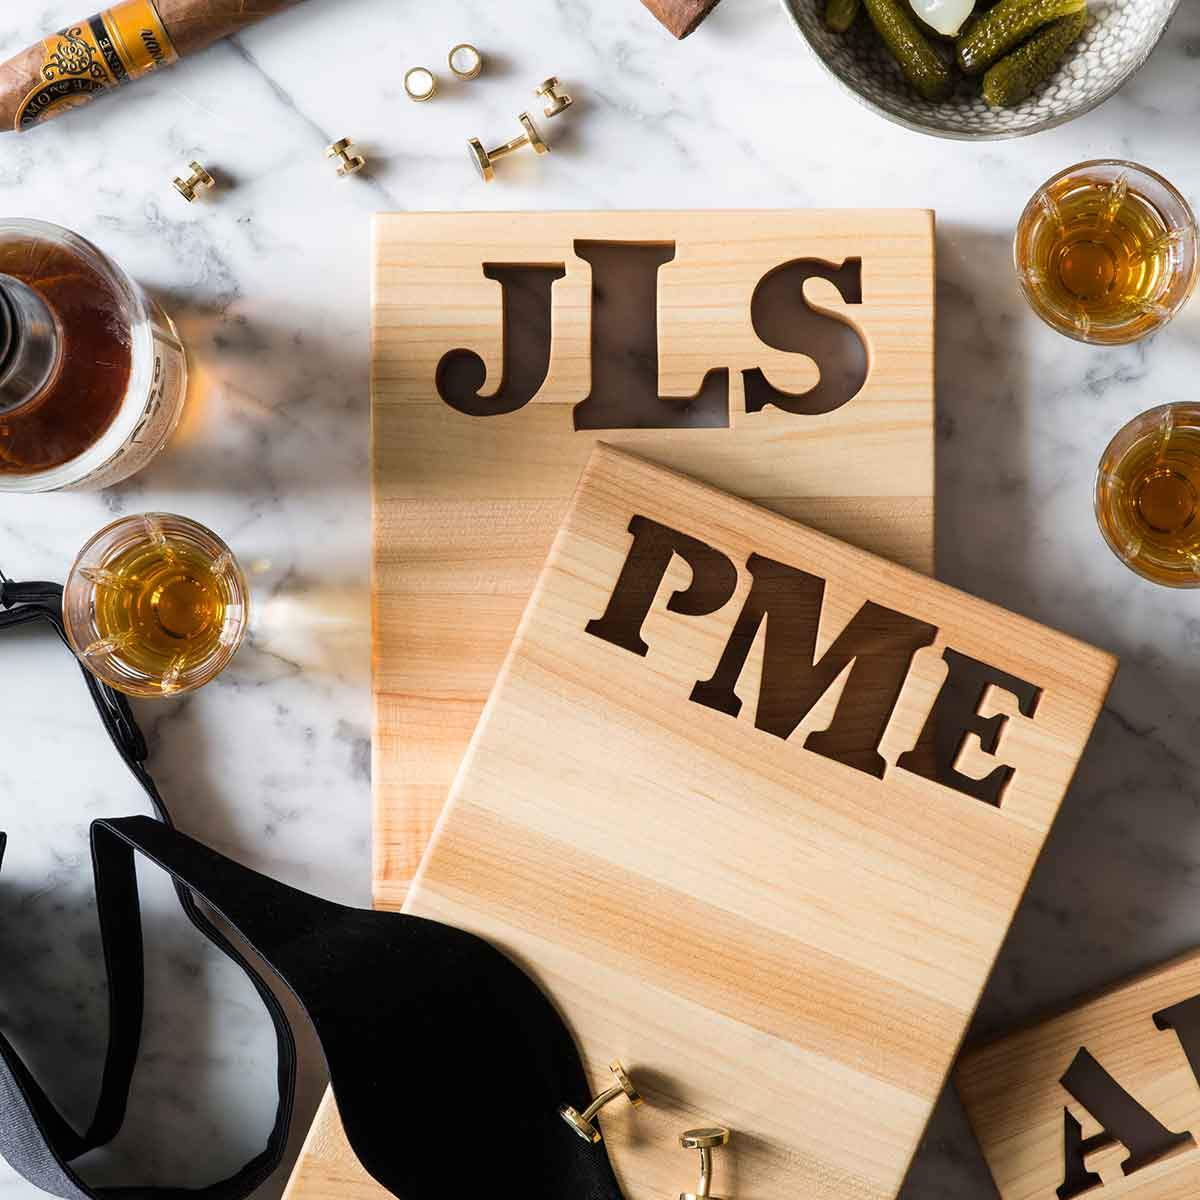 Personalized Gifts For Men - Monogrammed Cutting Board with Bottle Opener